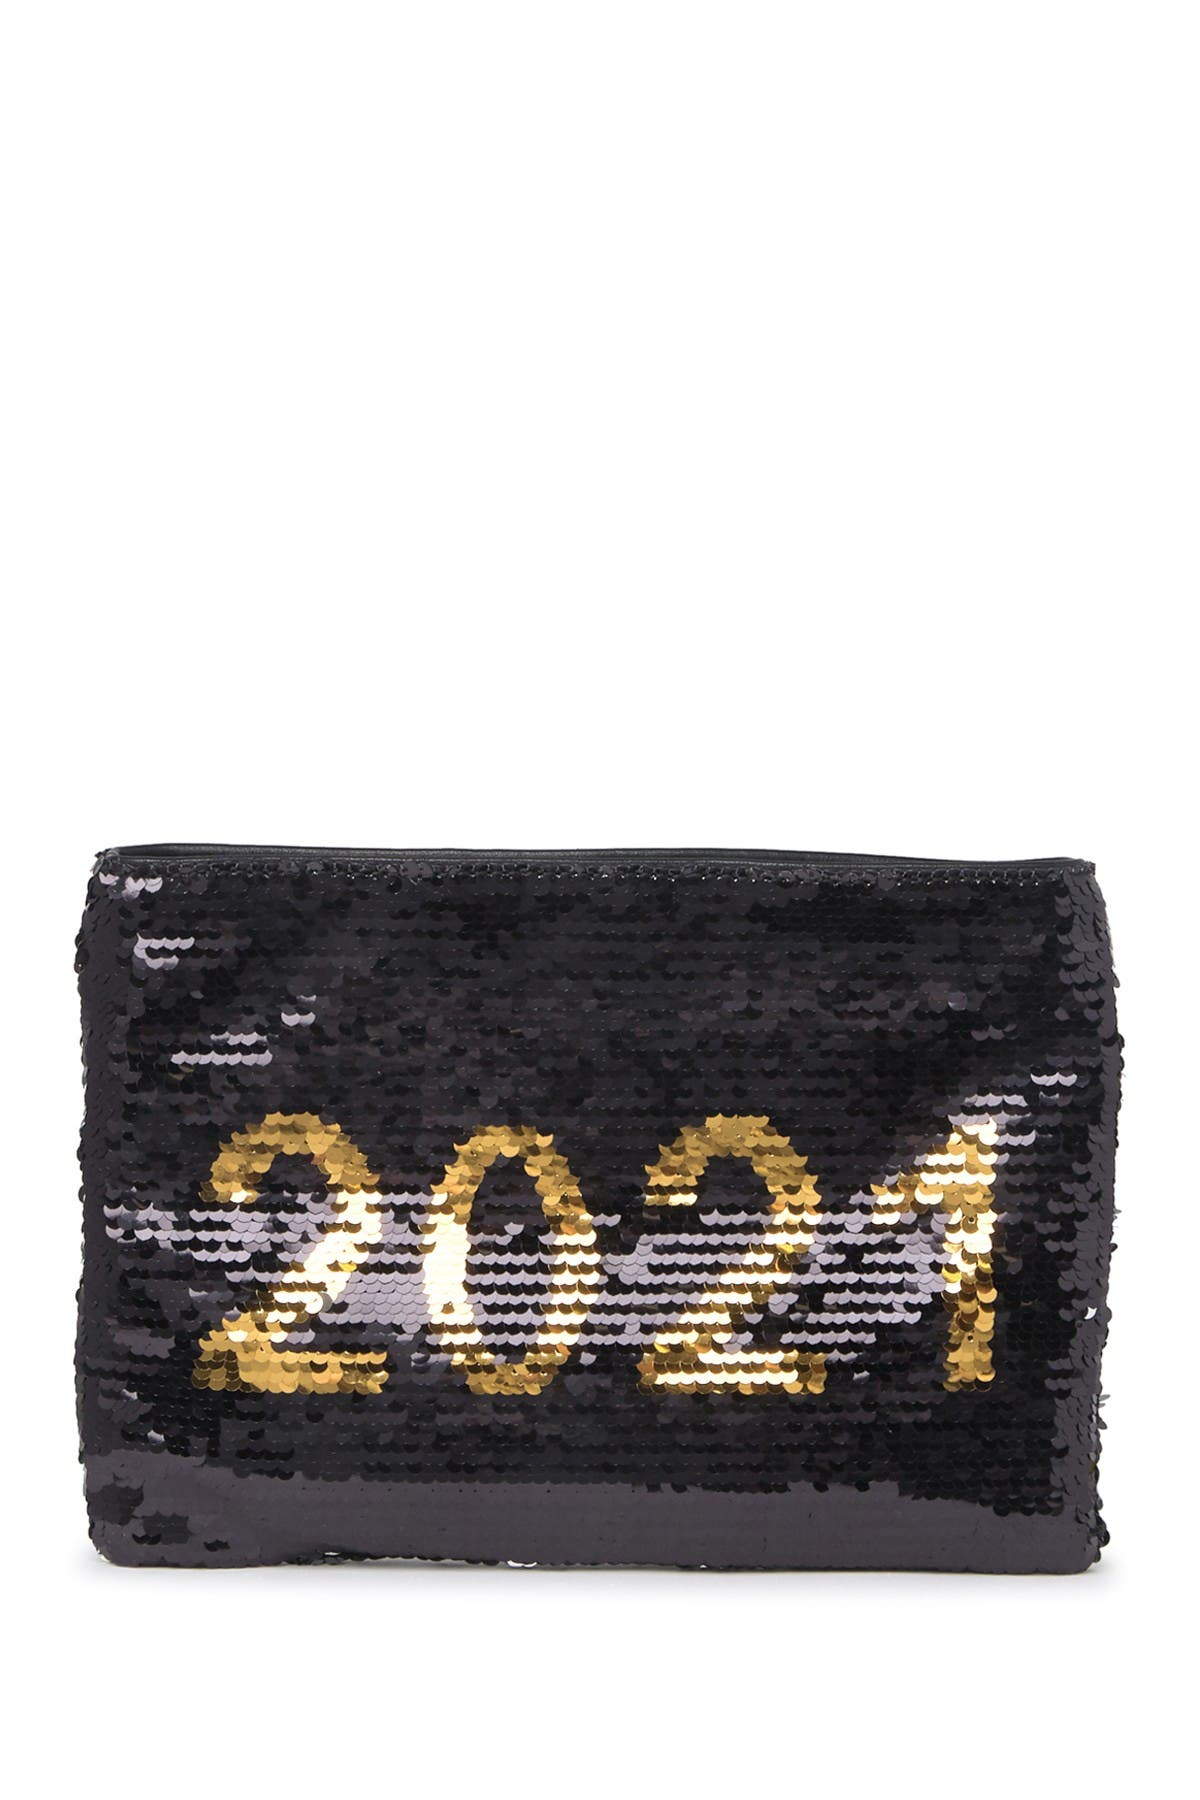 Image of Urban Expressions Reversible Sequin Rose All Day Clutch